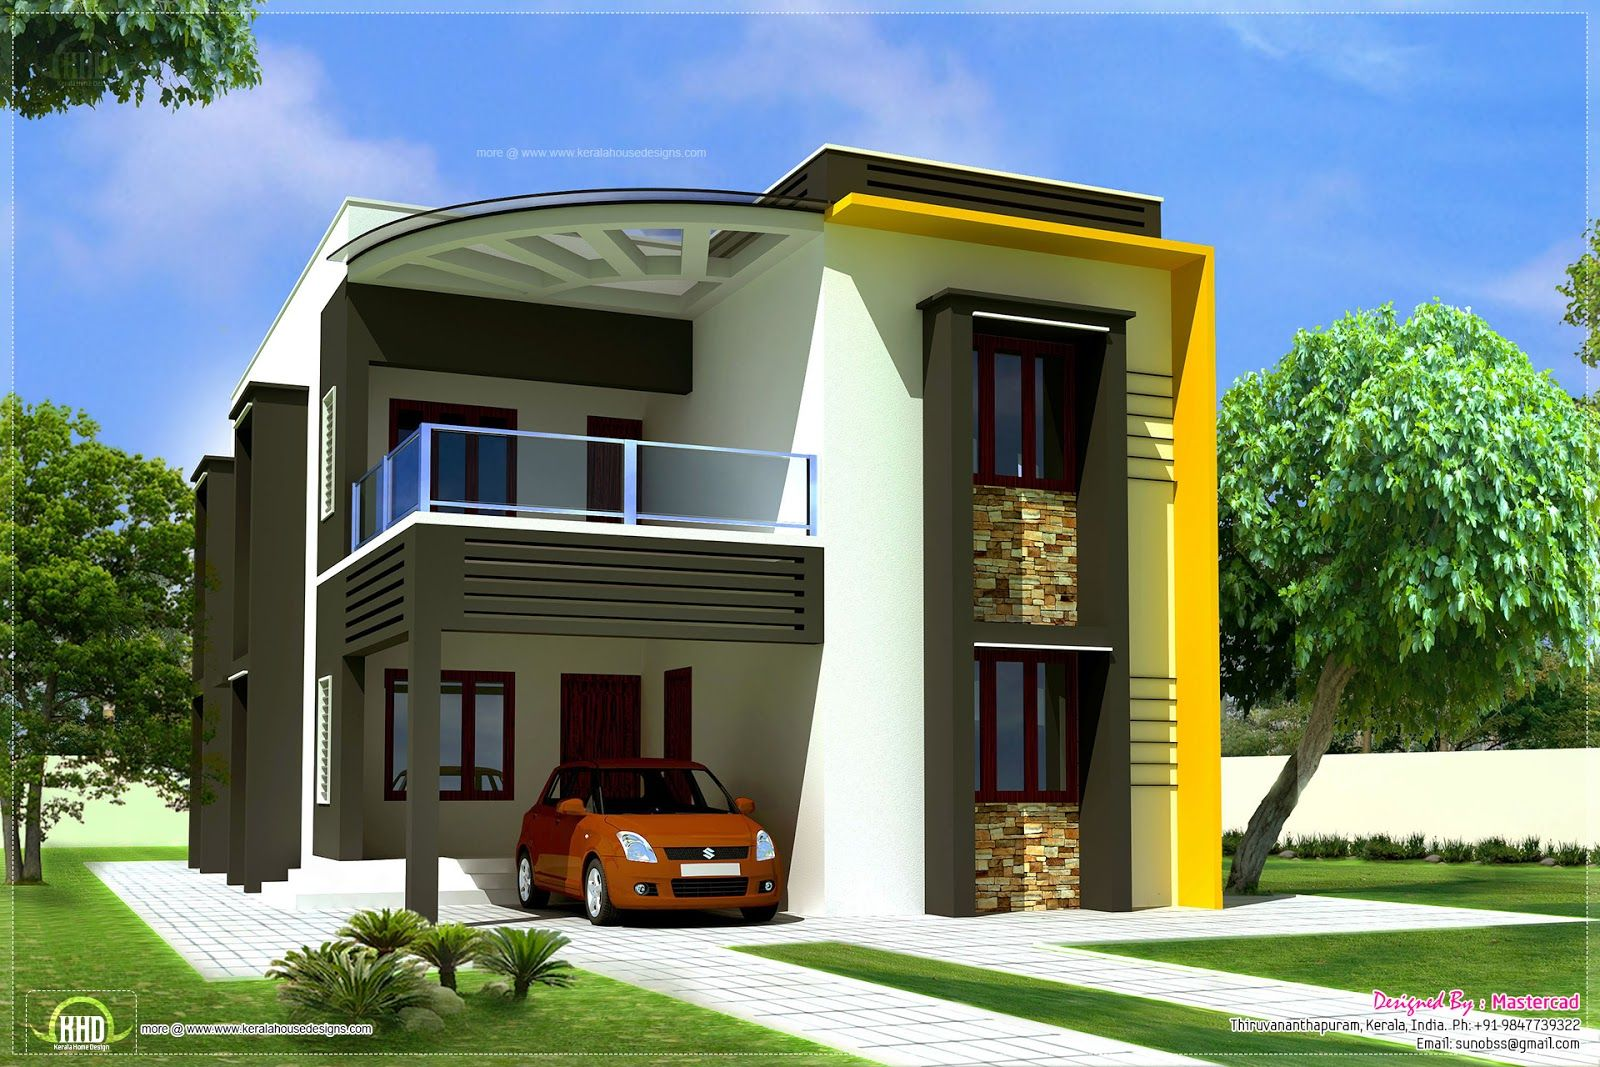 Pin by Daniel Bratu on House   House design pictures, Contemporary house design, House front ...